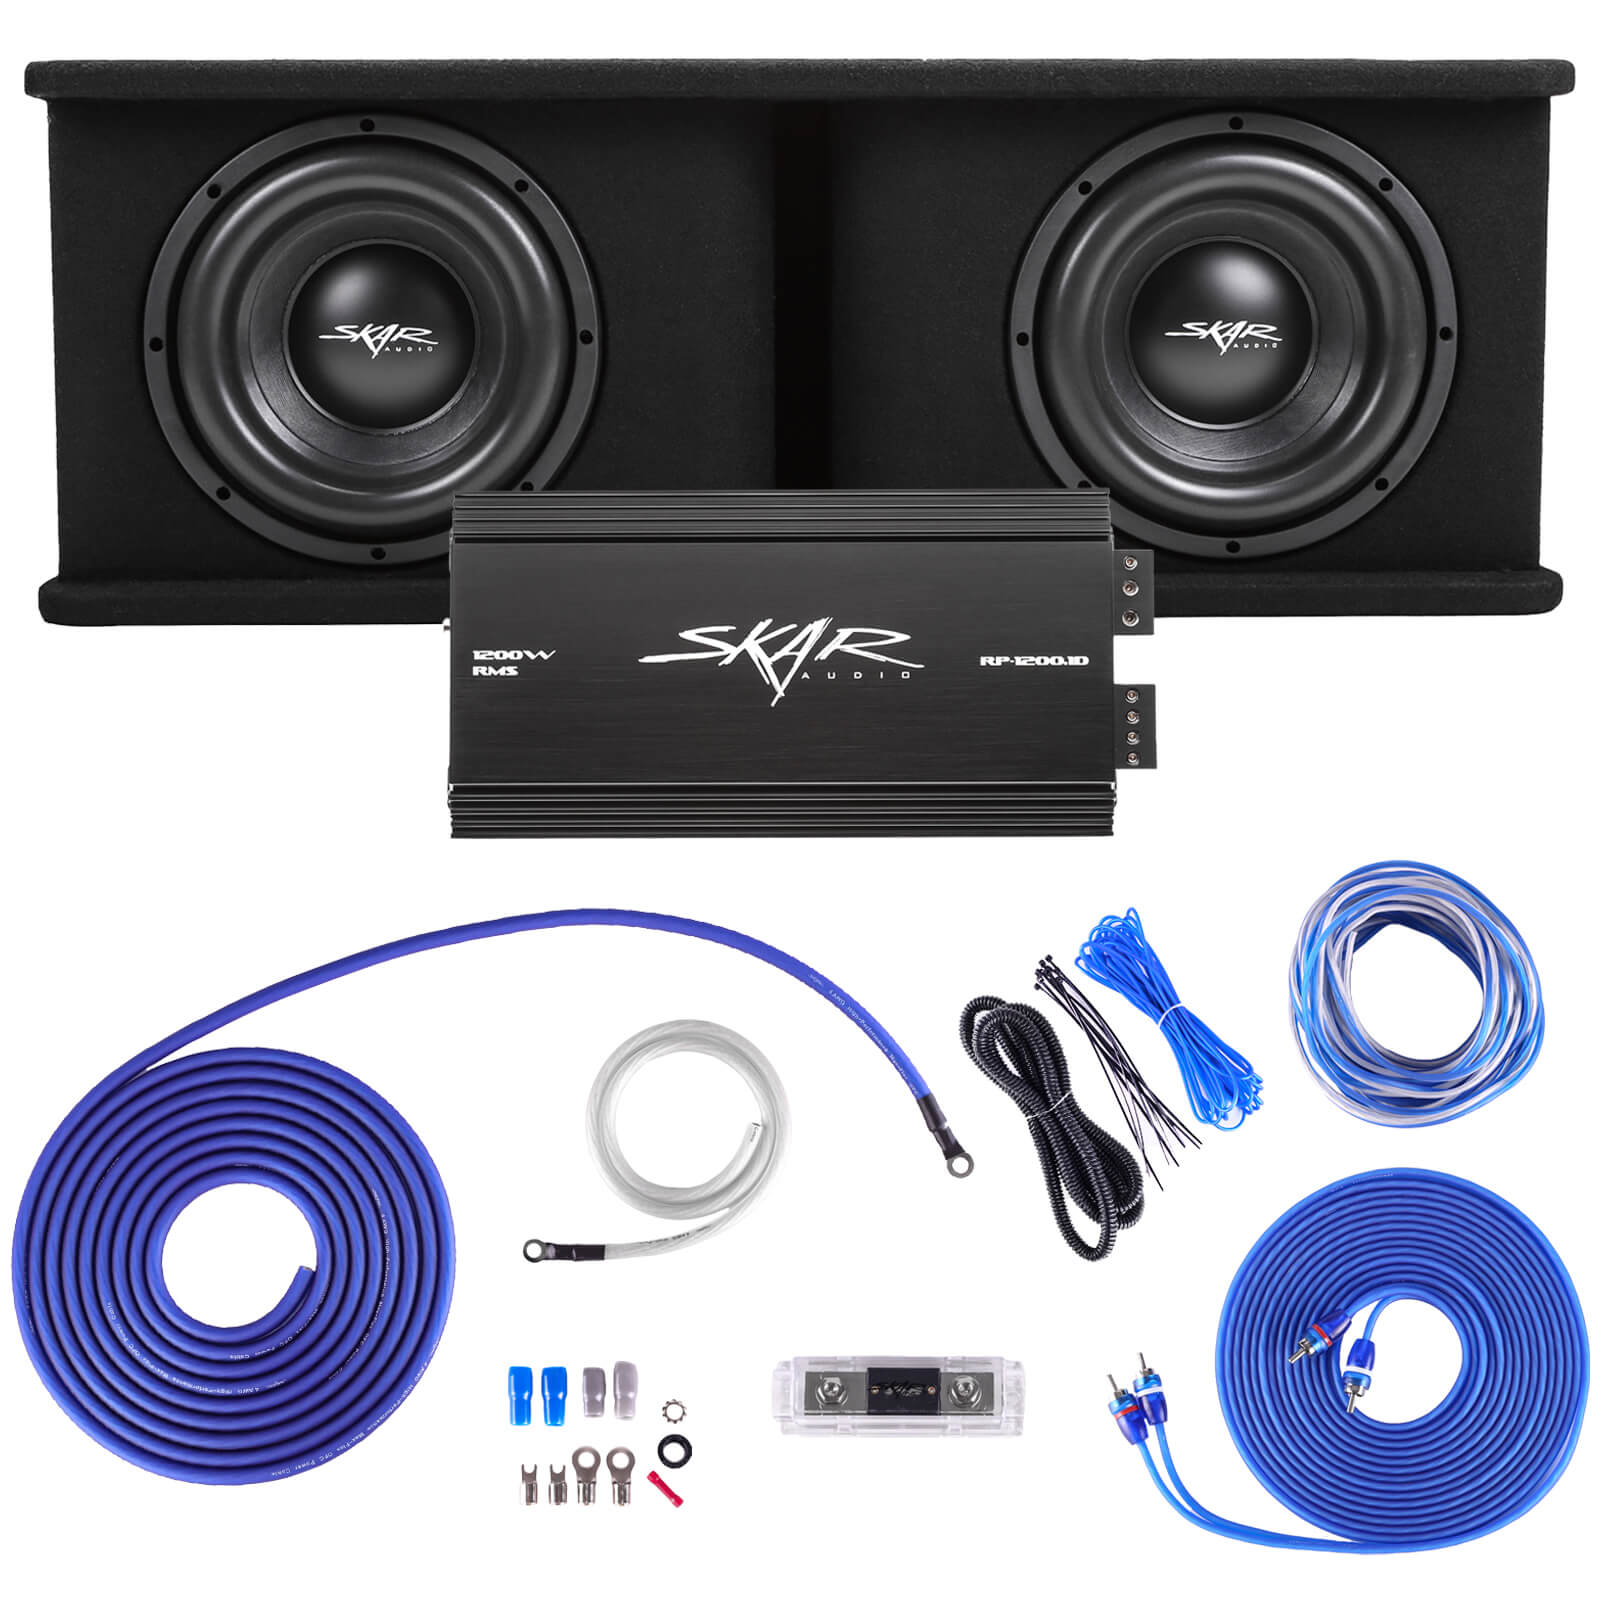 "Skar Audio Dual 10"" 2,400 Watt Max Power Loaded Subwoofer Enclosure Complete Bass System - Main Image"